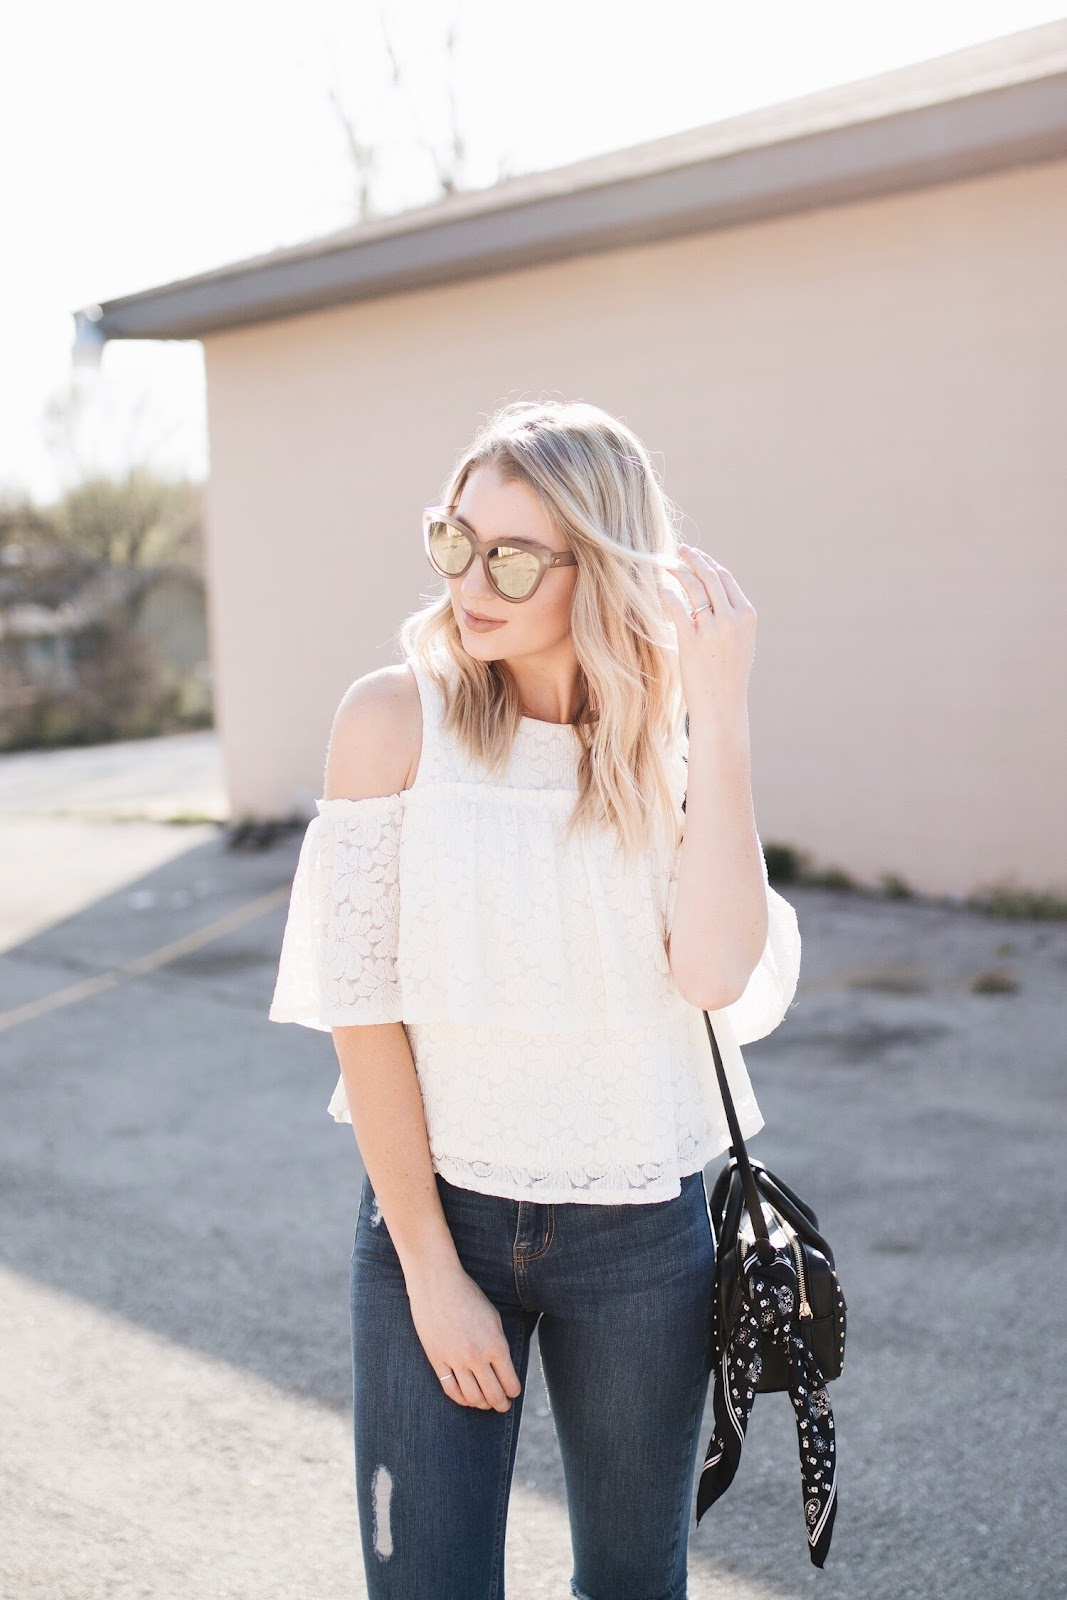 spring outfit: lace top with oversized sunglasses